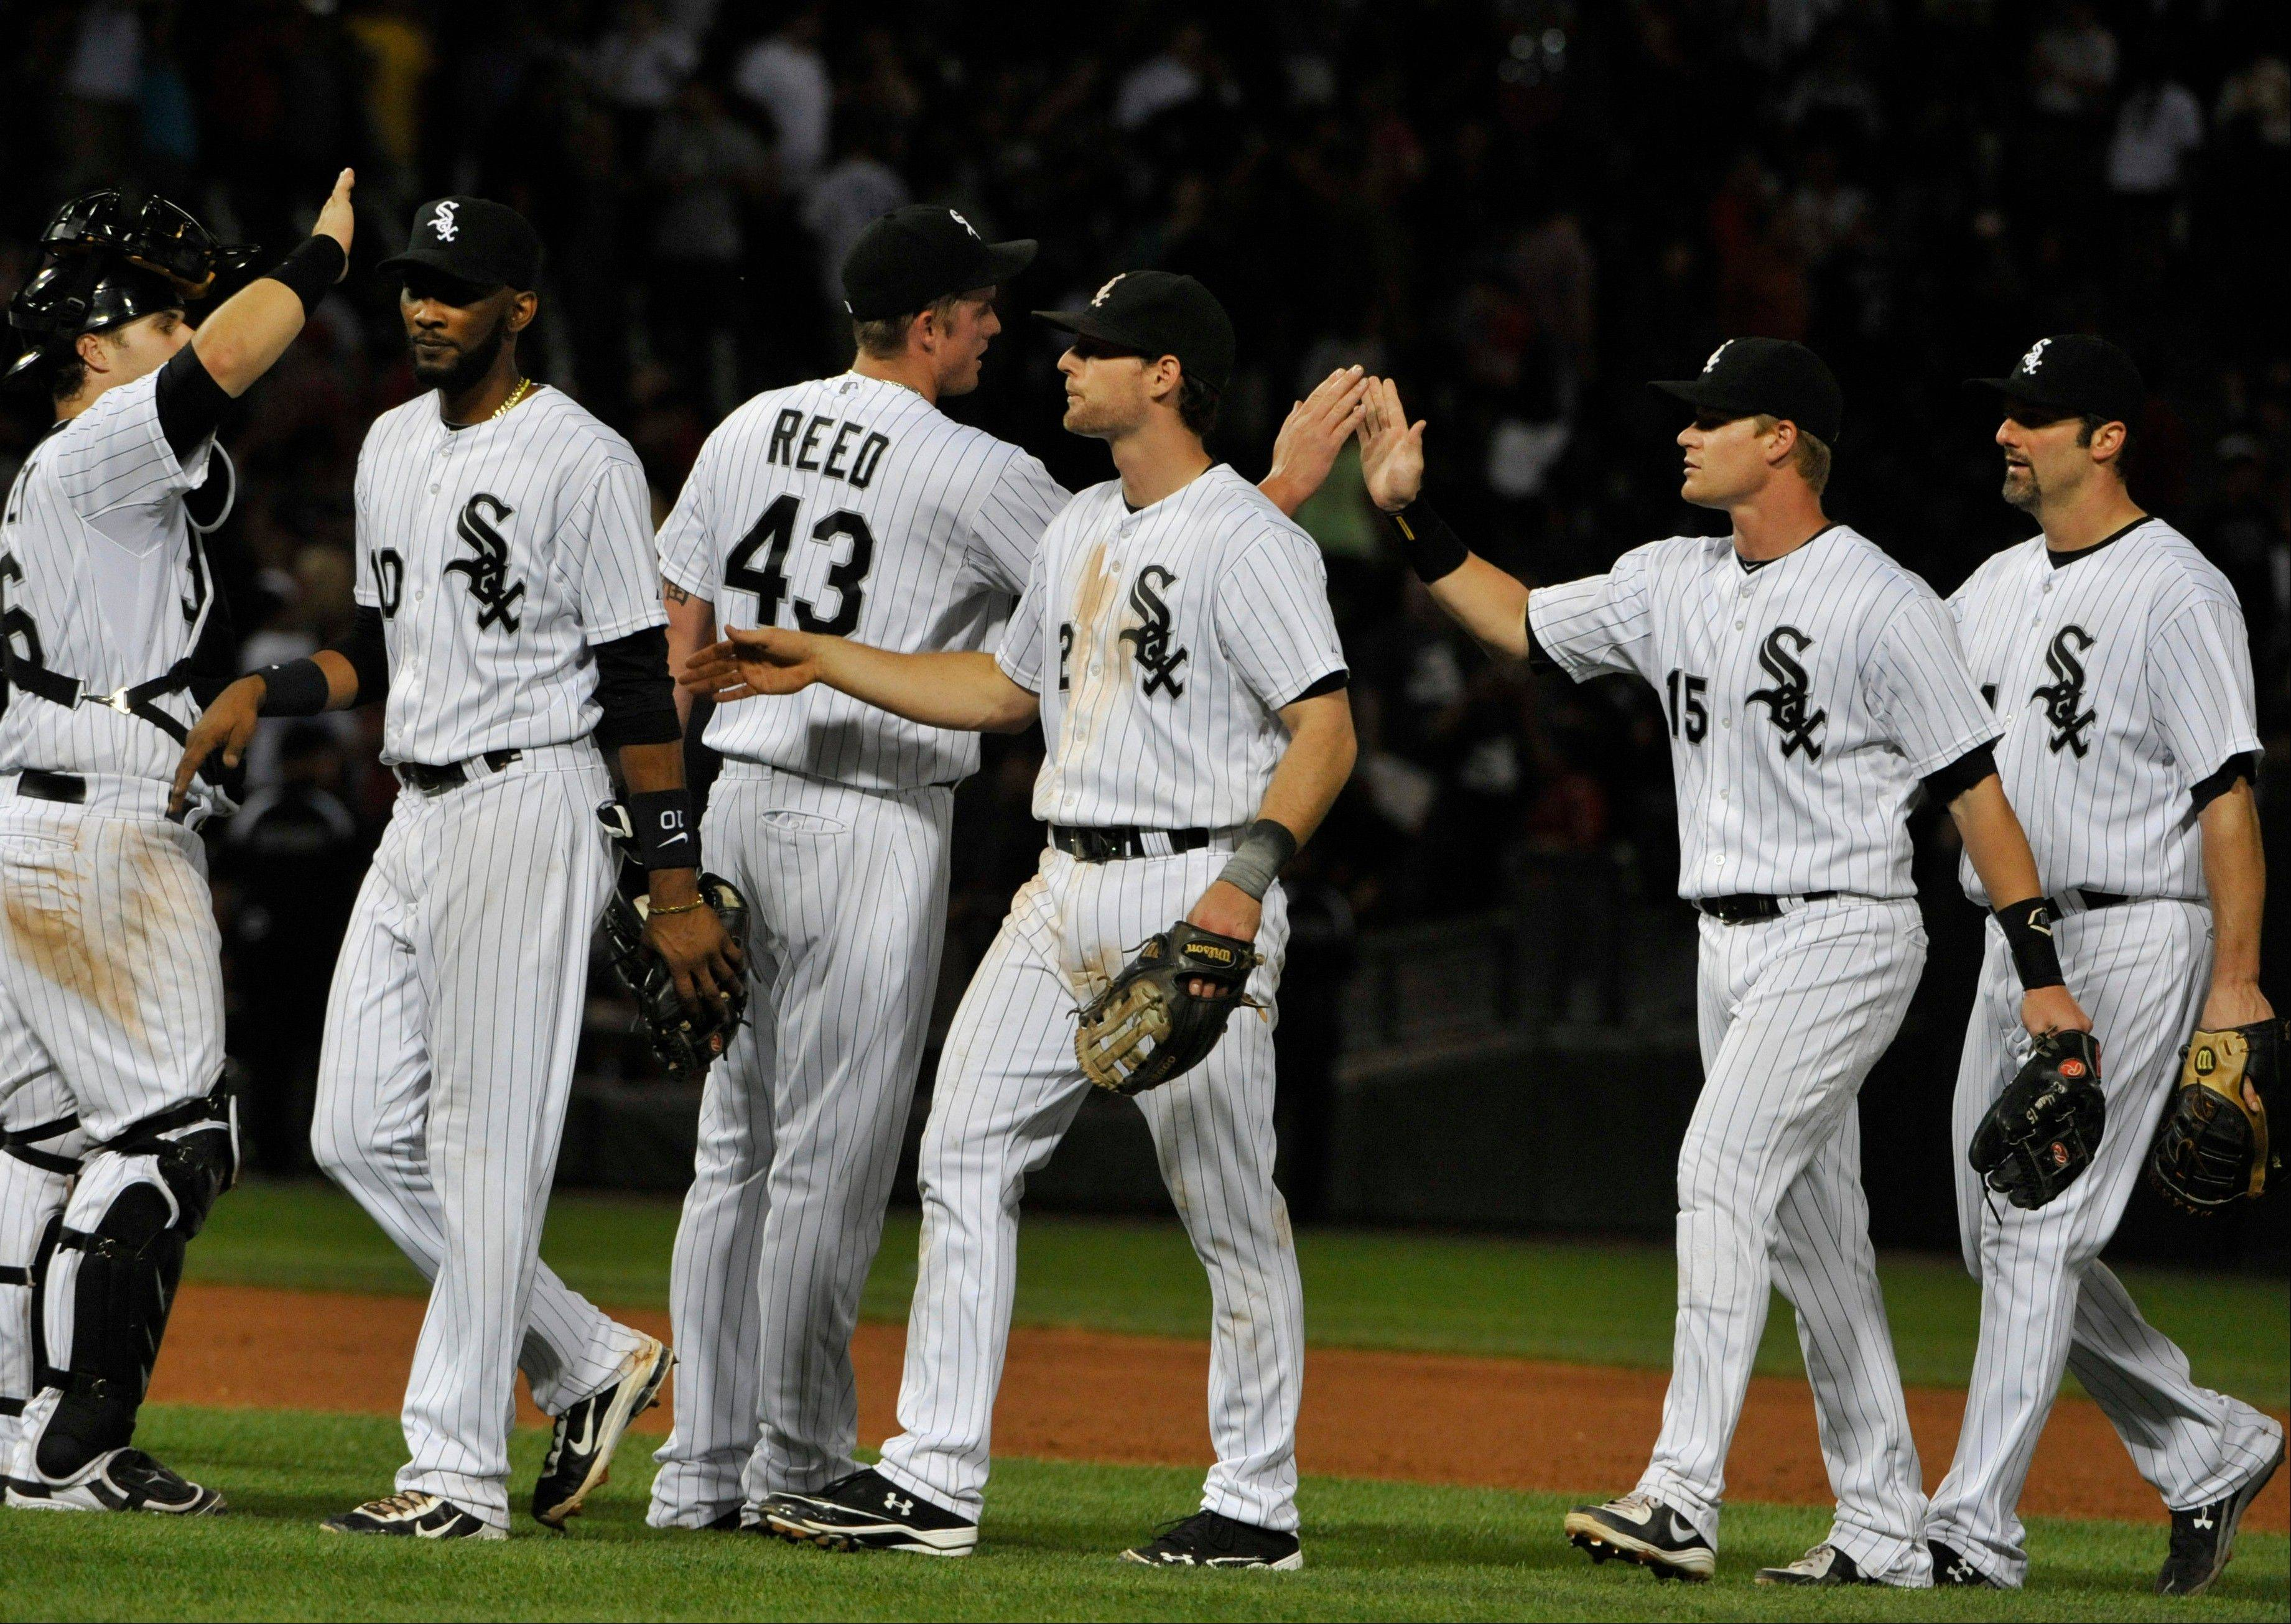 Konerko's hustle helps Sale pick up a win